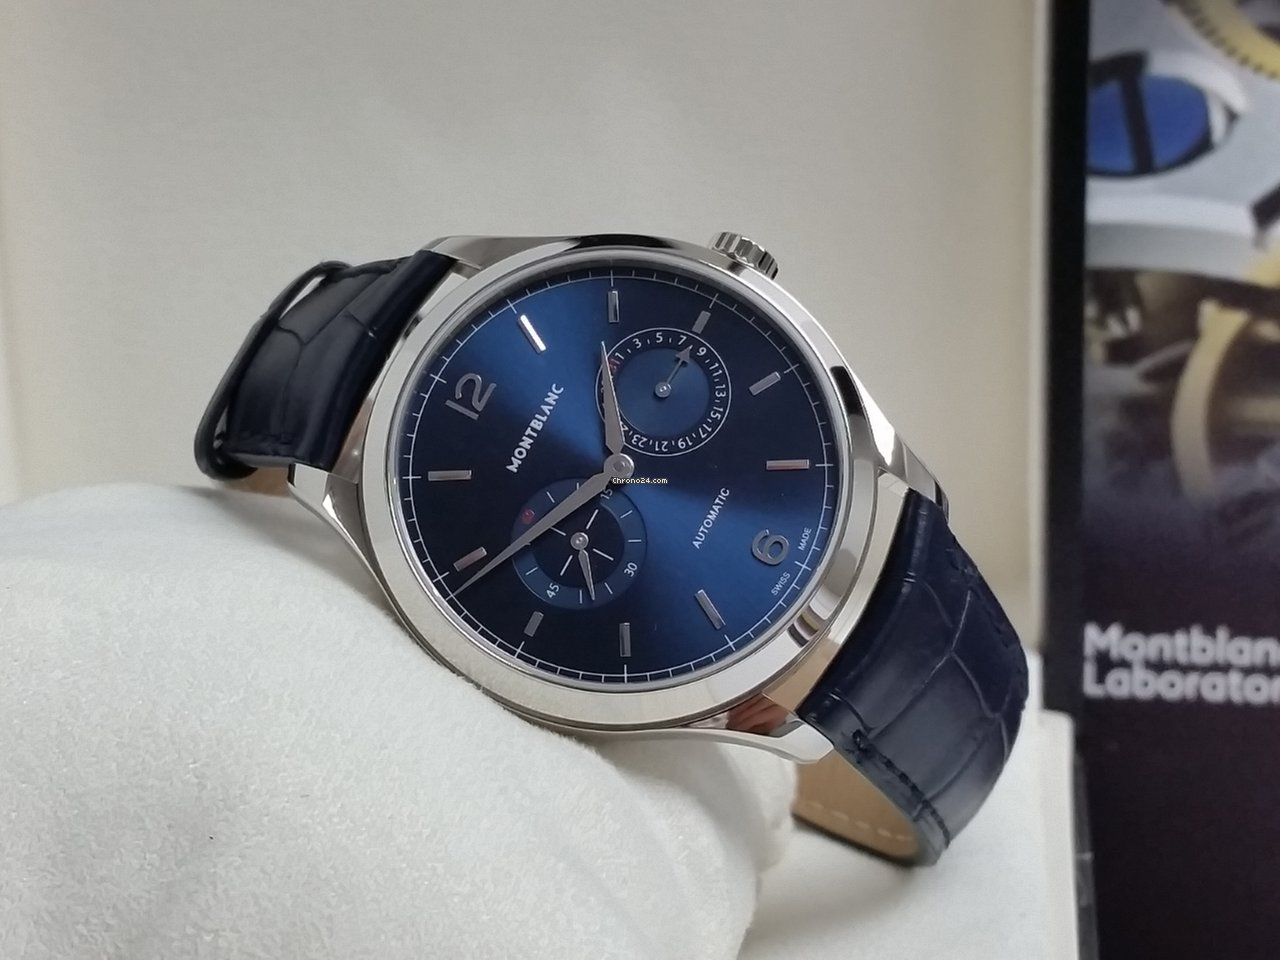 75398031d689 Montblanc watches - all prices for Montblanc watches on Chrono24